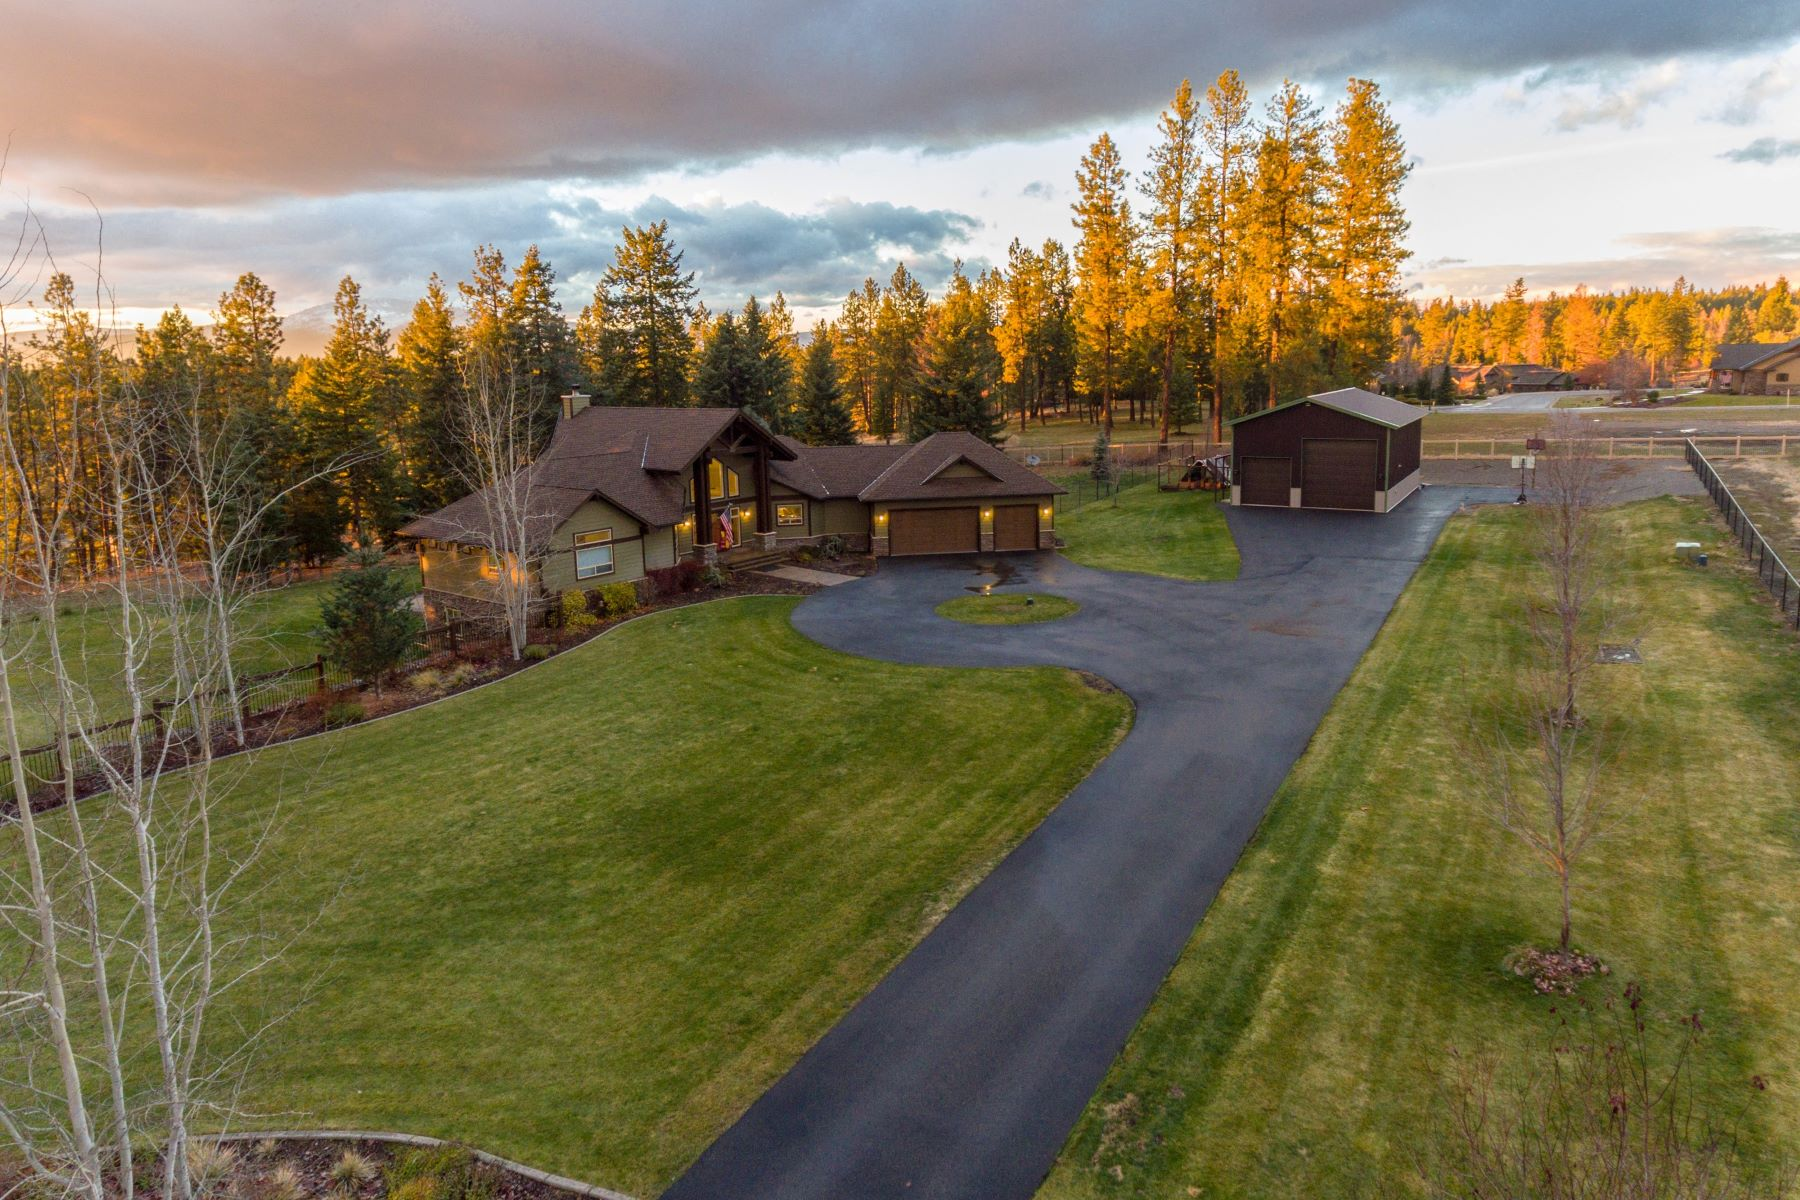 Single Family Home for Sale at Spectacular Private Home on 2.5 Acres 1285 E Starling Meadows Ct Hayden, Idaho 83835 United States